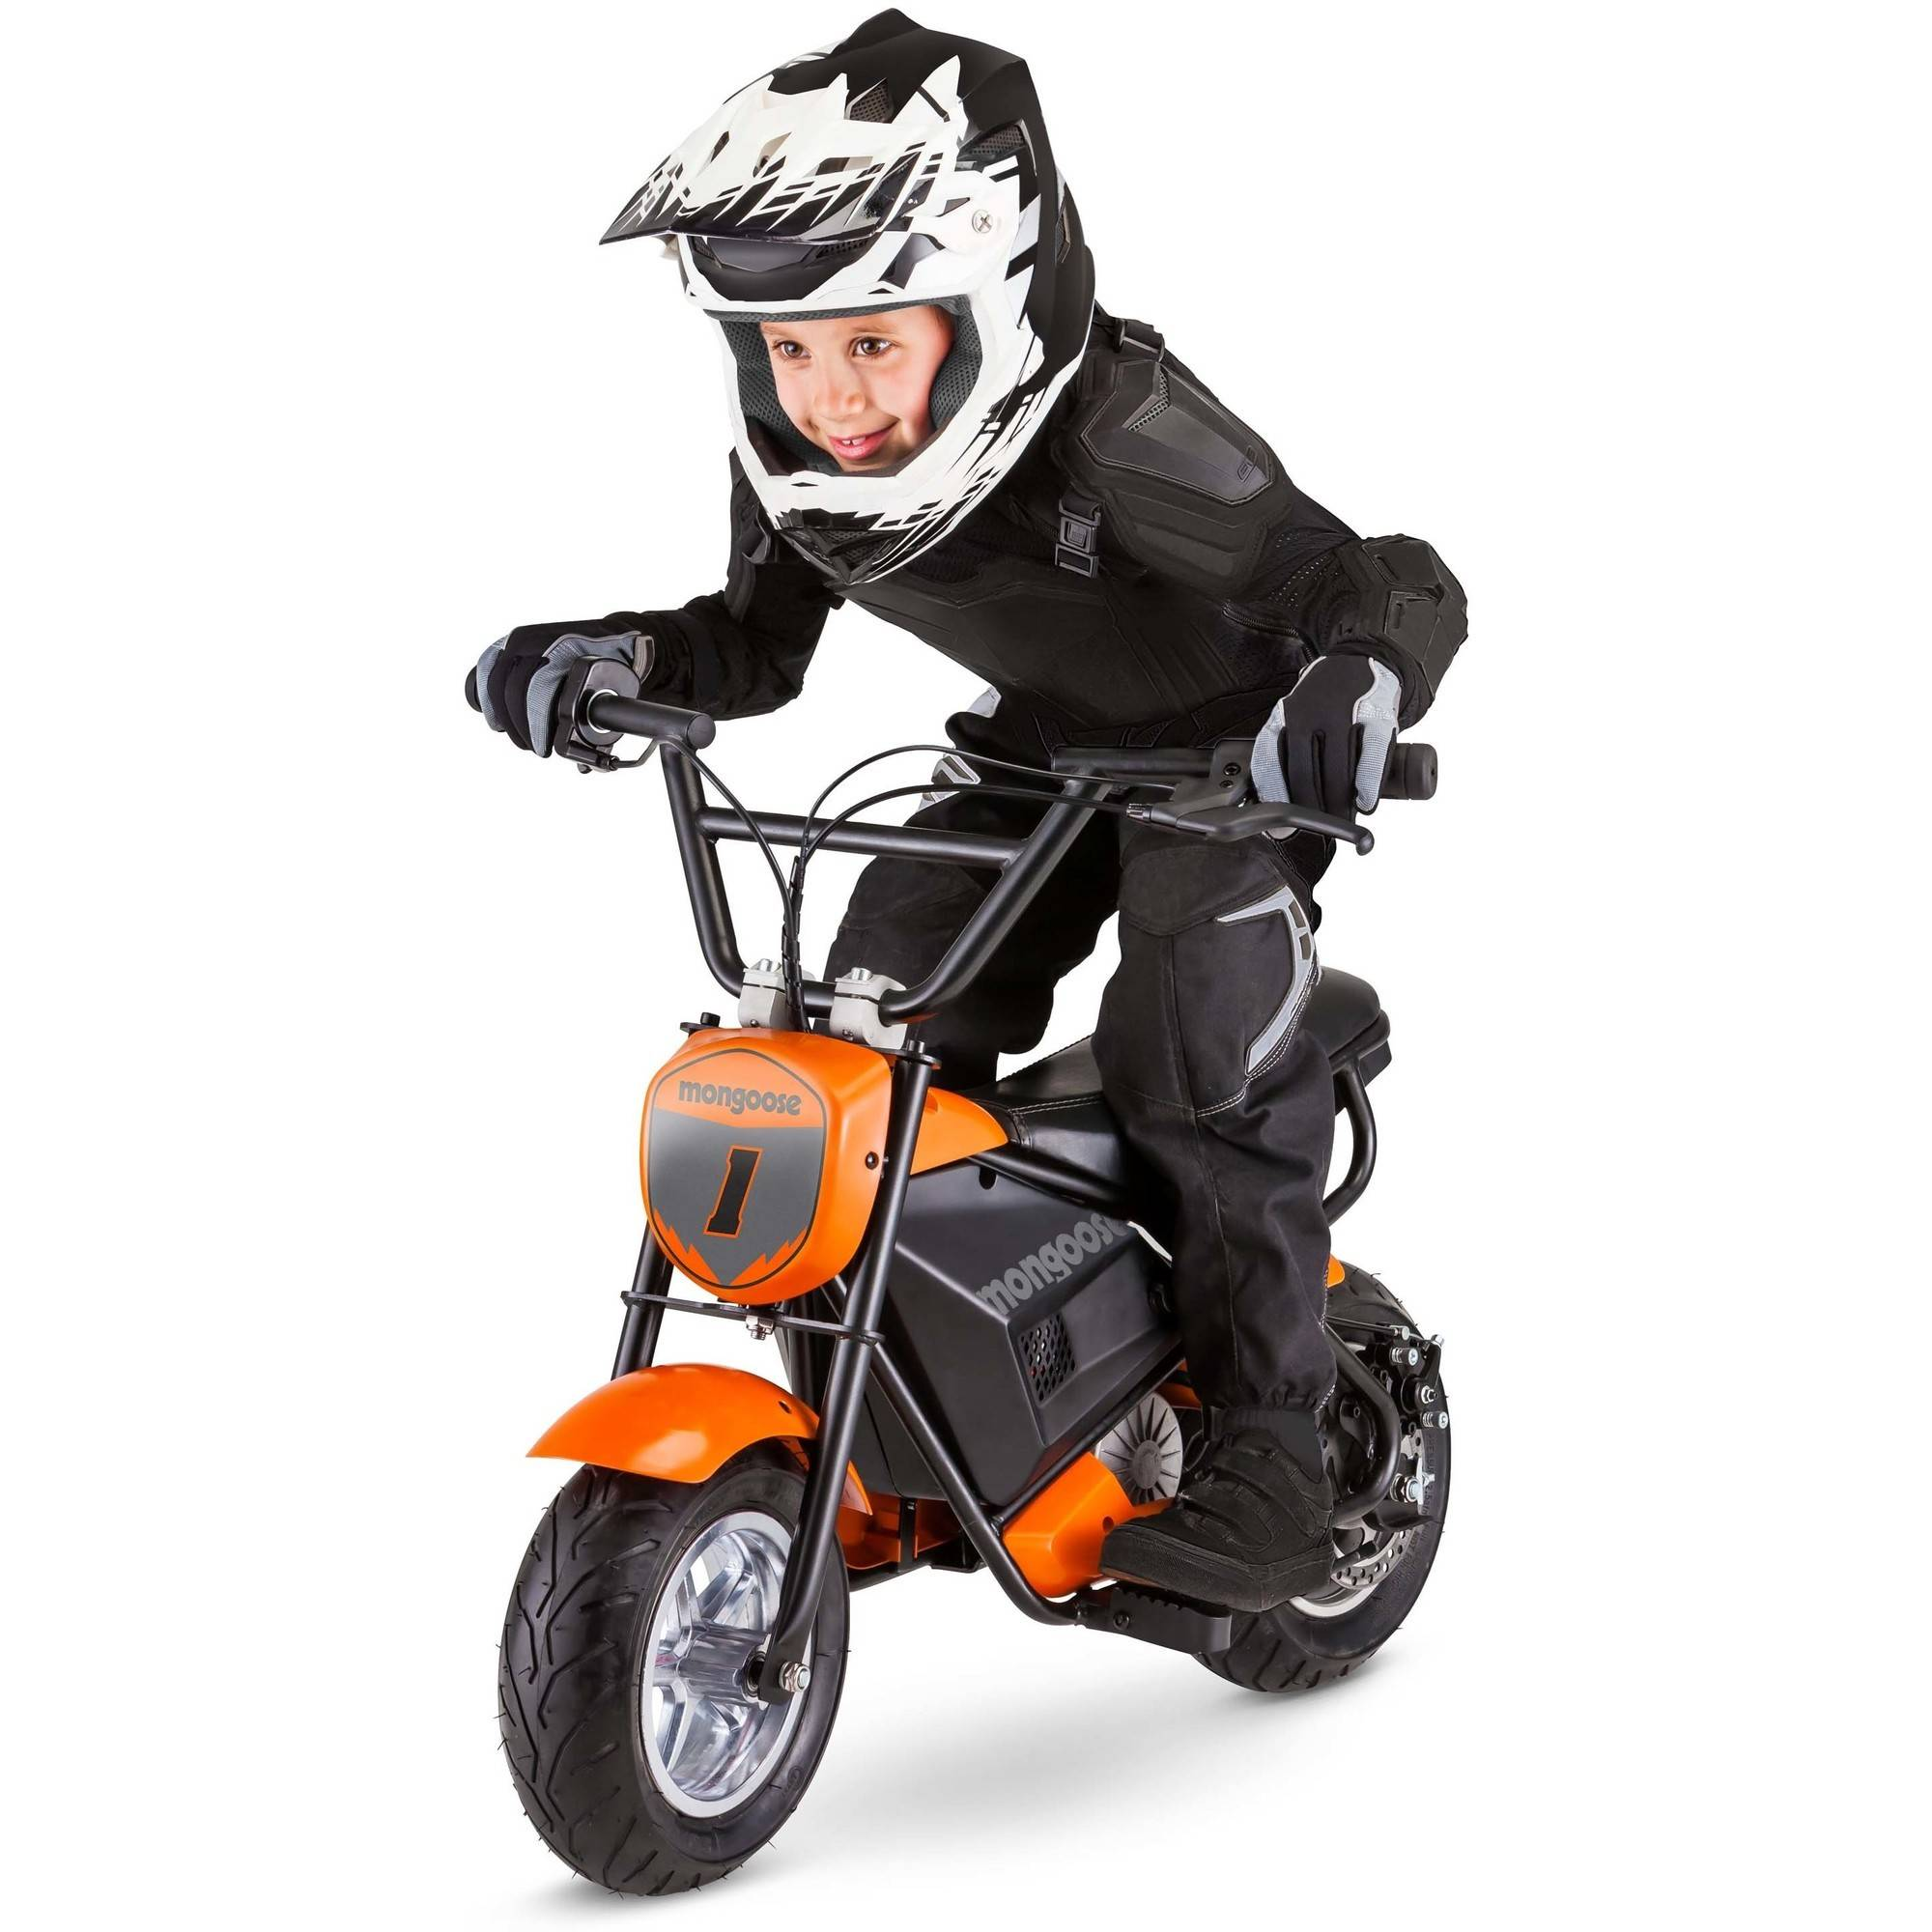 Mongoose 24V Mini Bike, Orange   Walmart.com